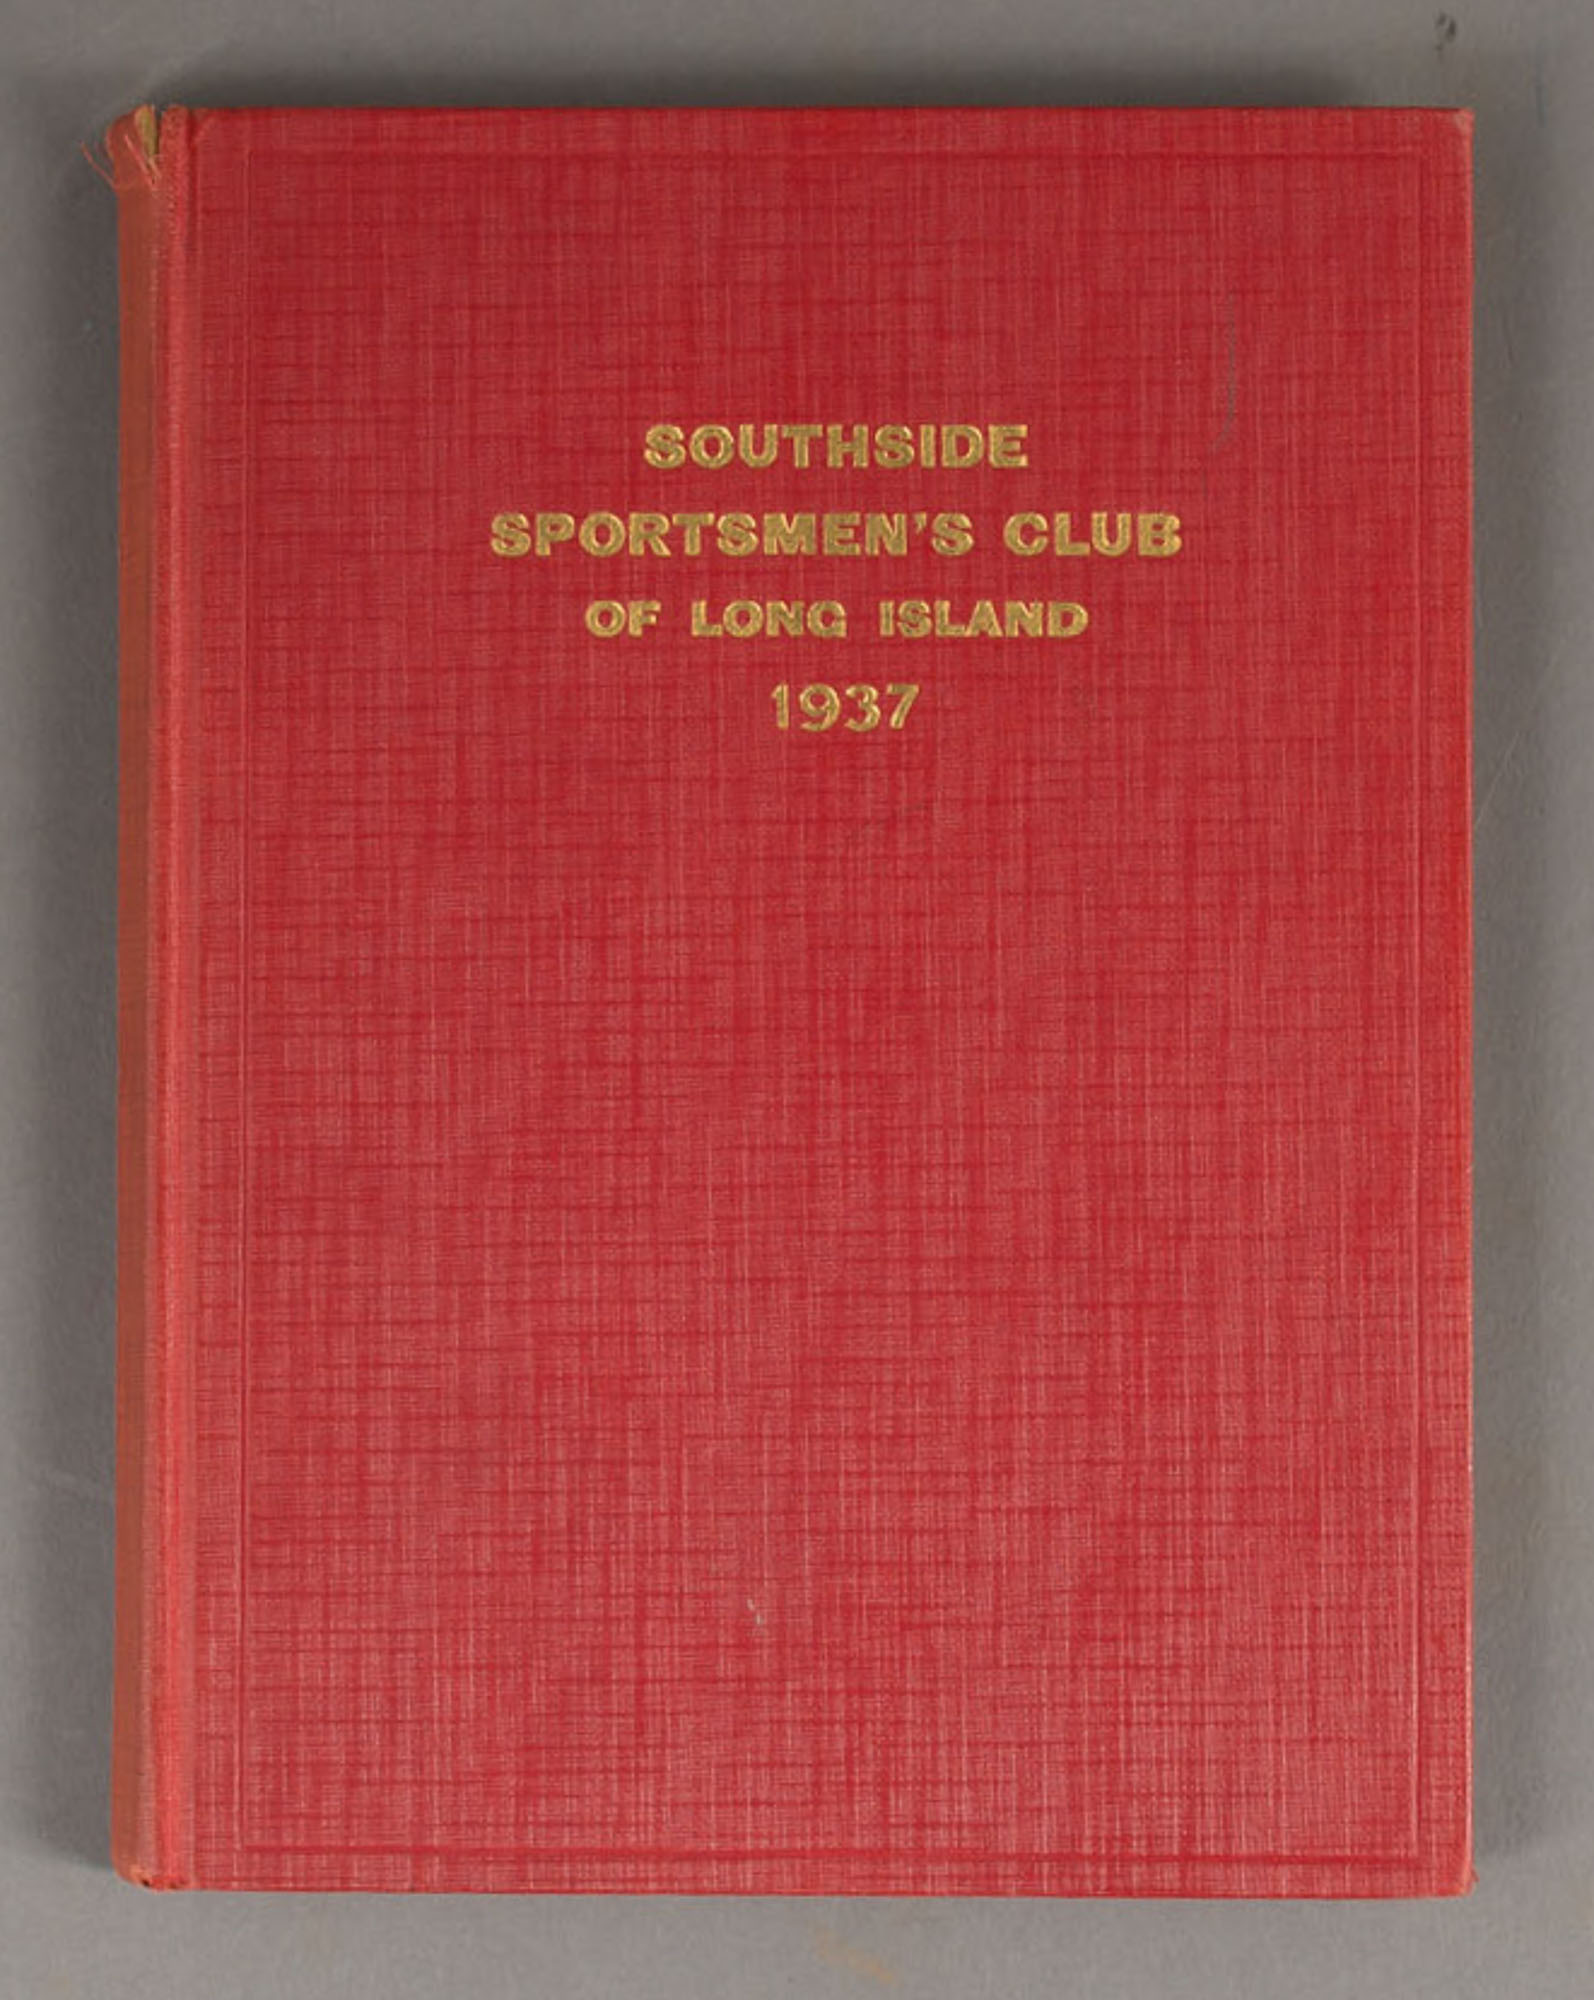 Lot image - [ANON]  Southside Sportsmens Club of Long Island: Constitution and Rules.